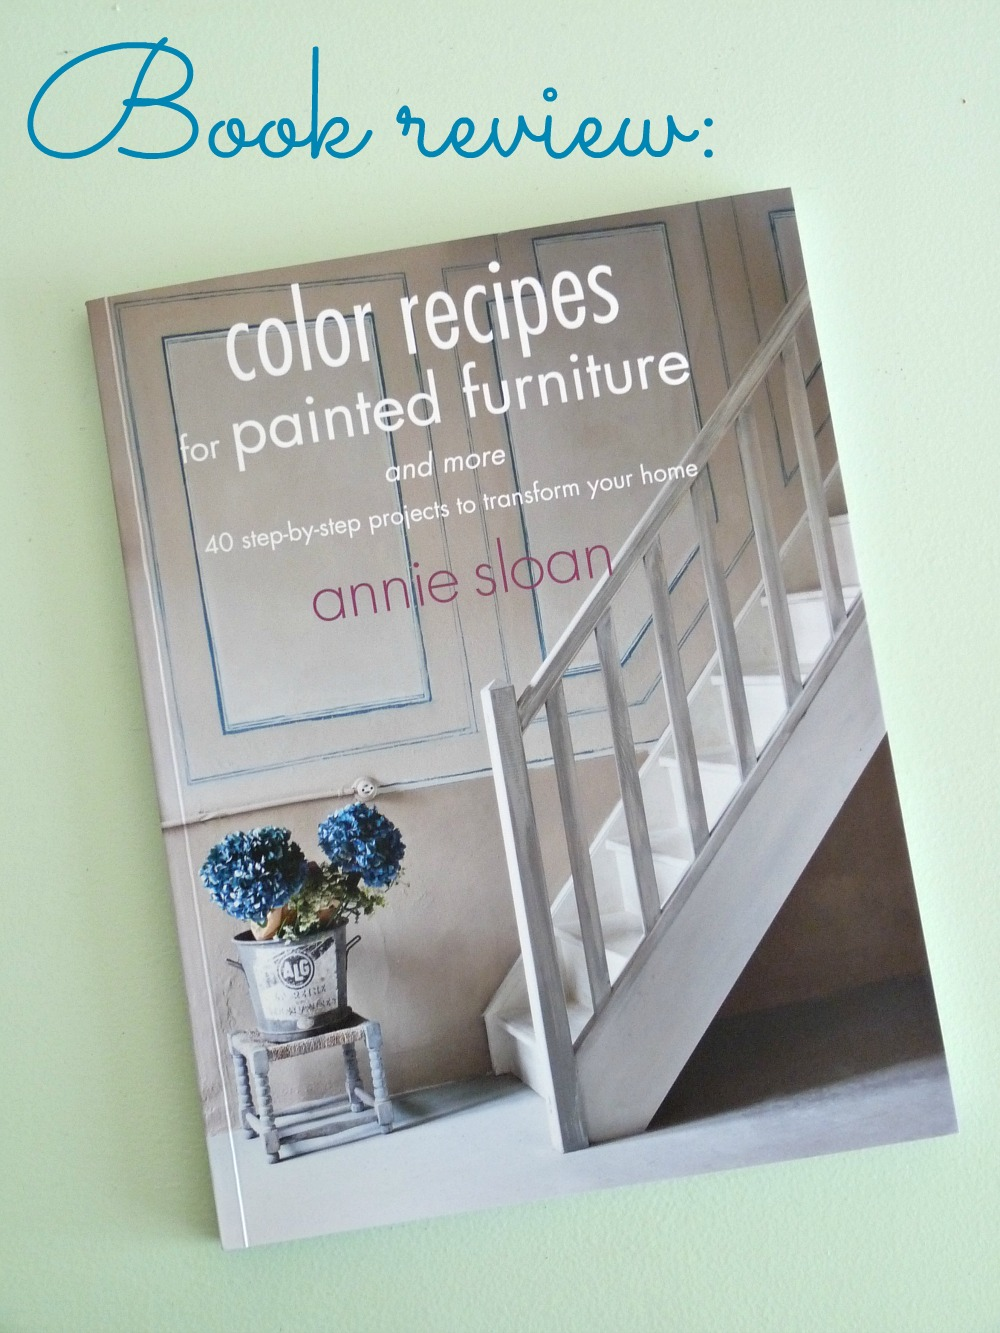 Annie Sloan's Color Recipes for Painted Furniture